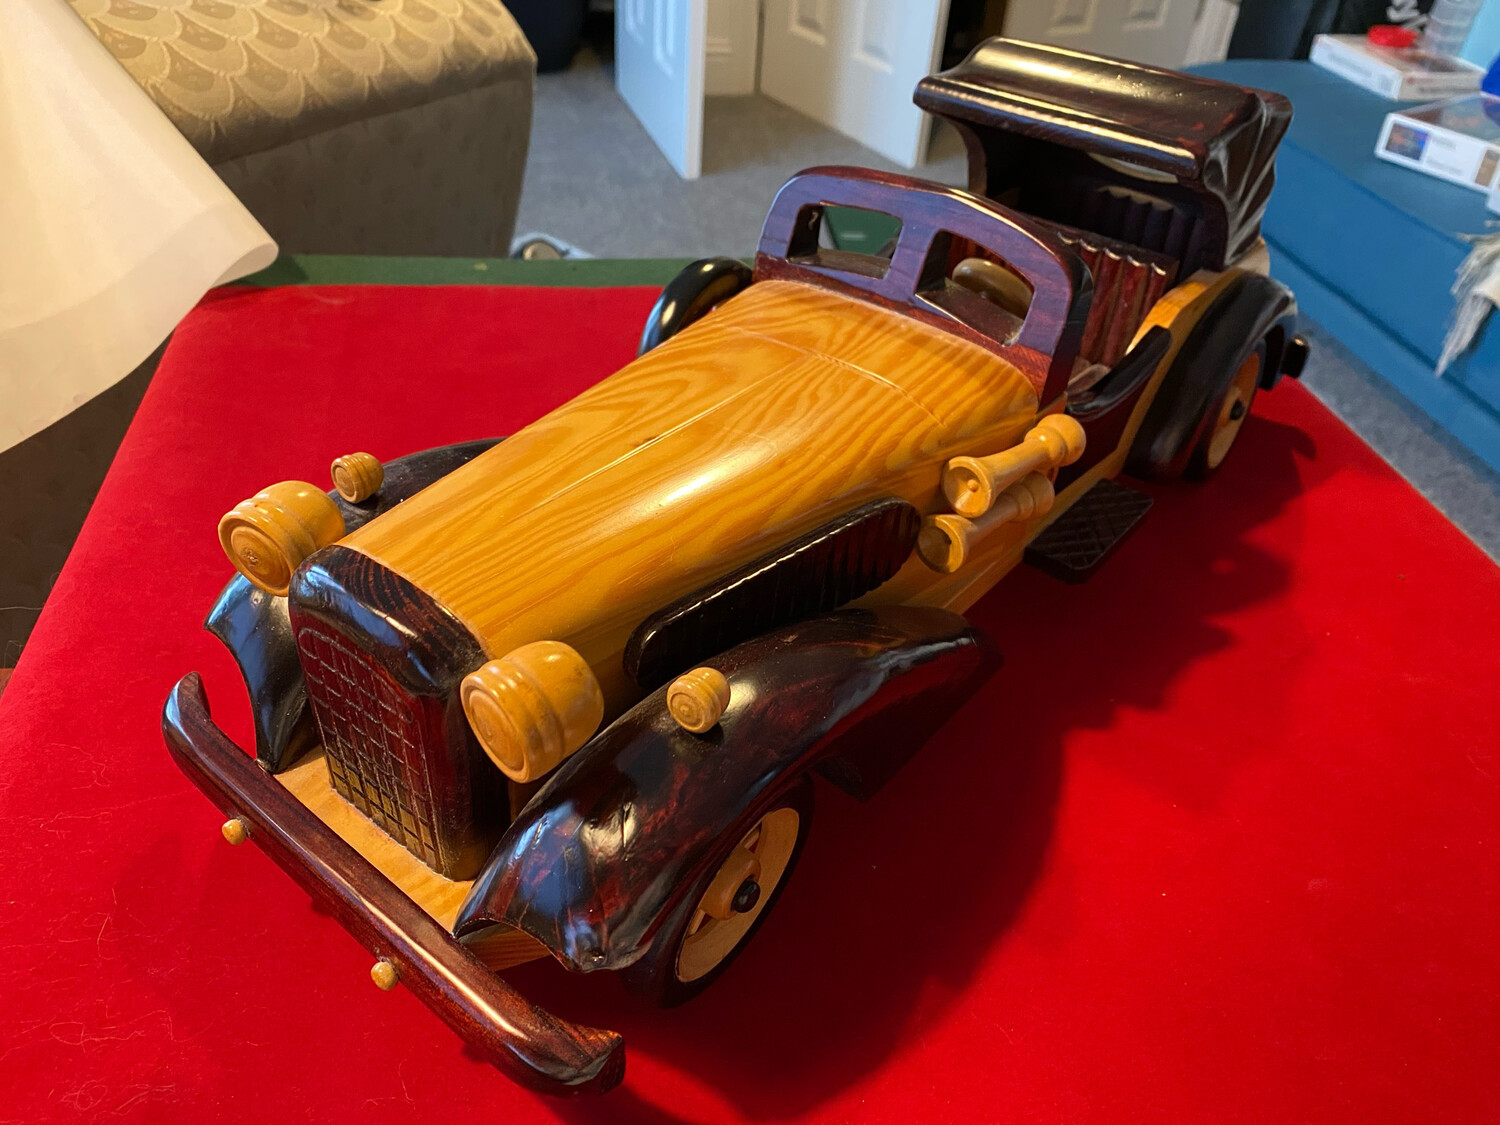 1920's style vintage wooden car (modern) - stunning and very decorative